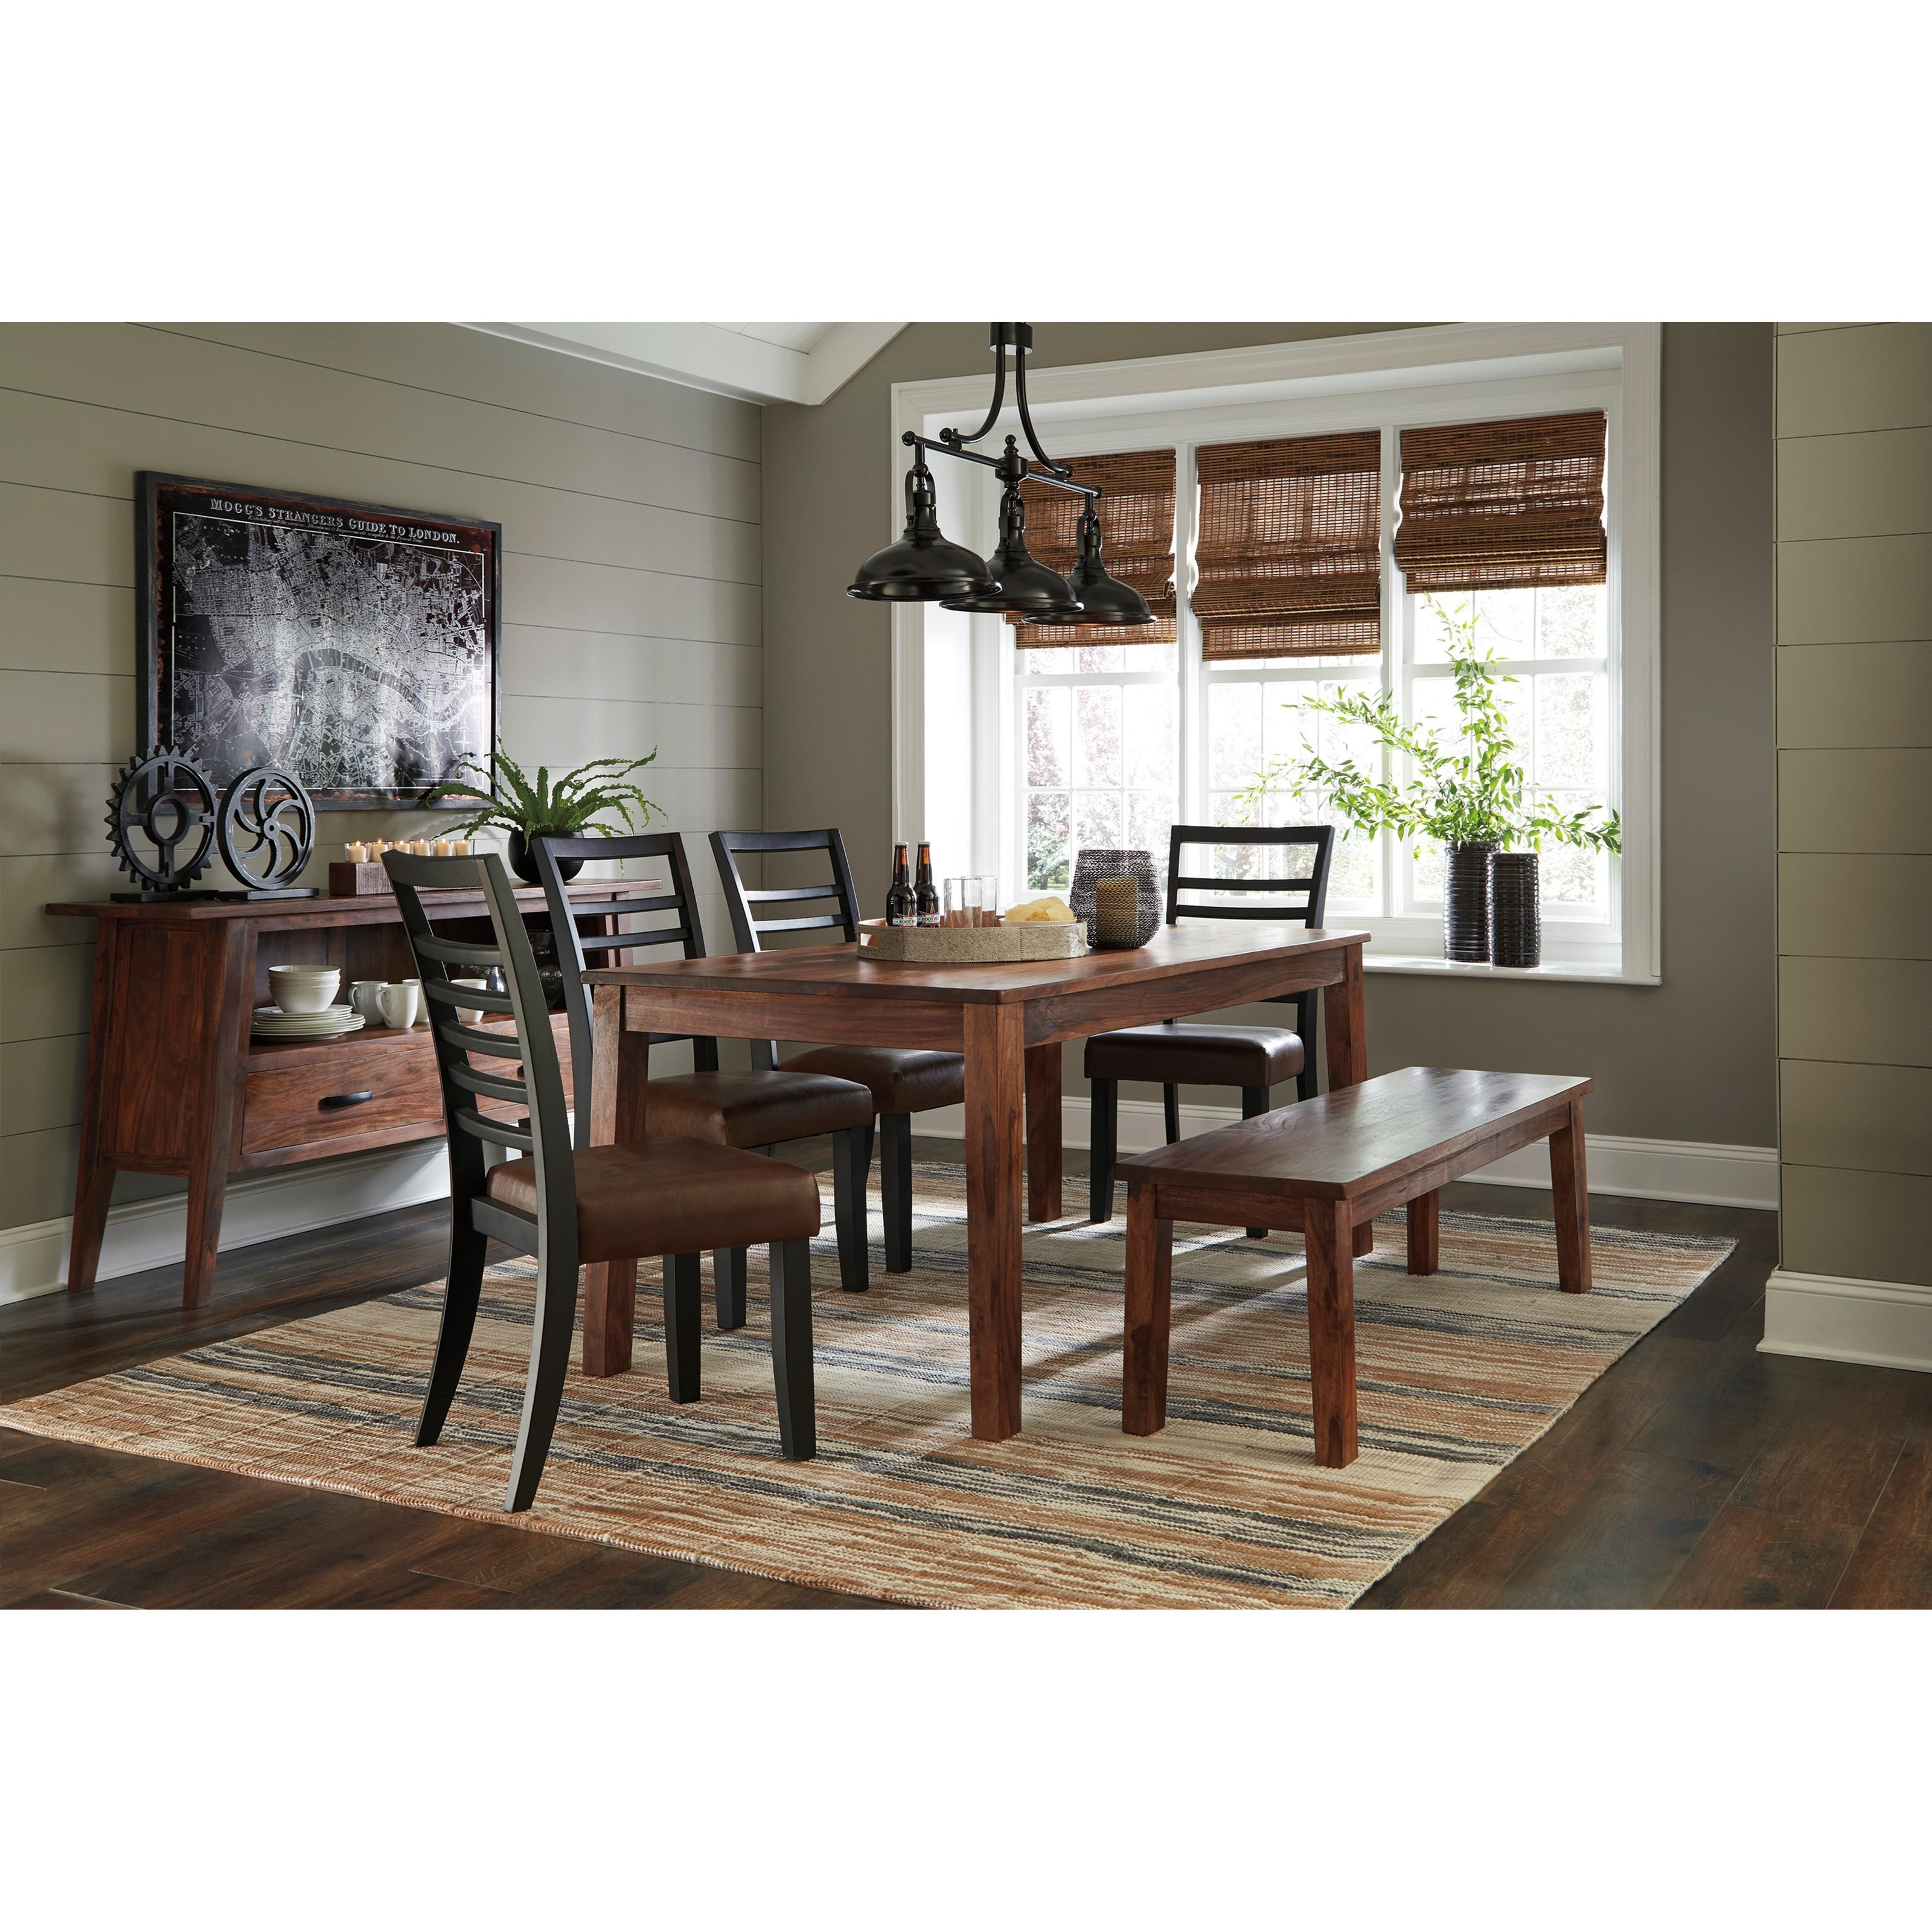 Signature design by ashley manishore casual dining room for Casual dining room decor